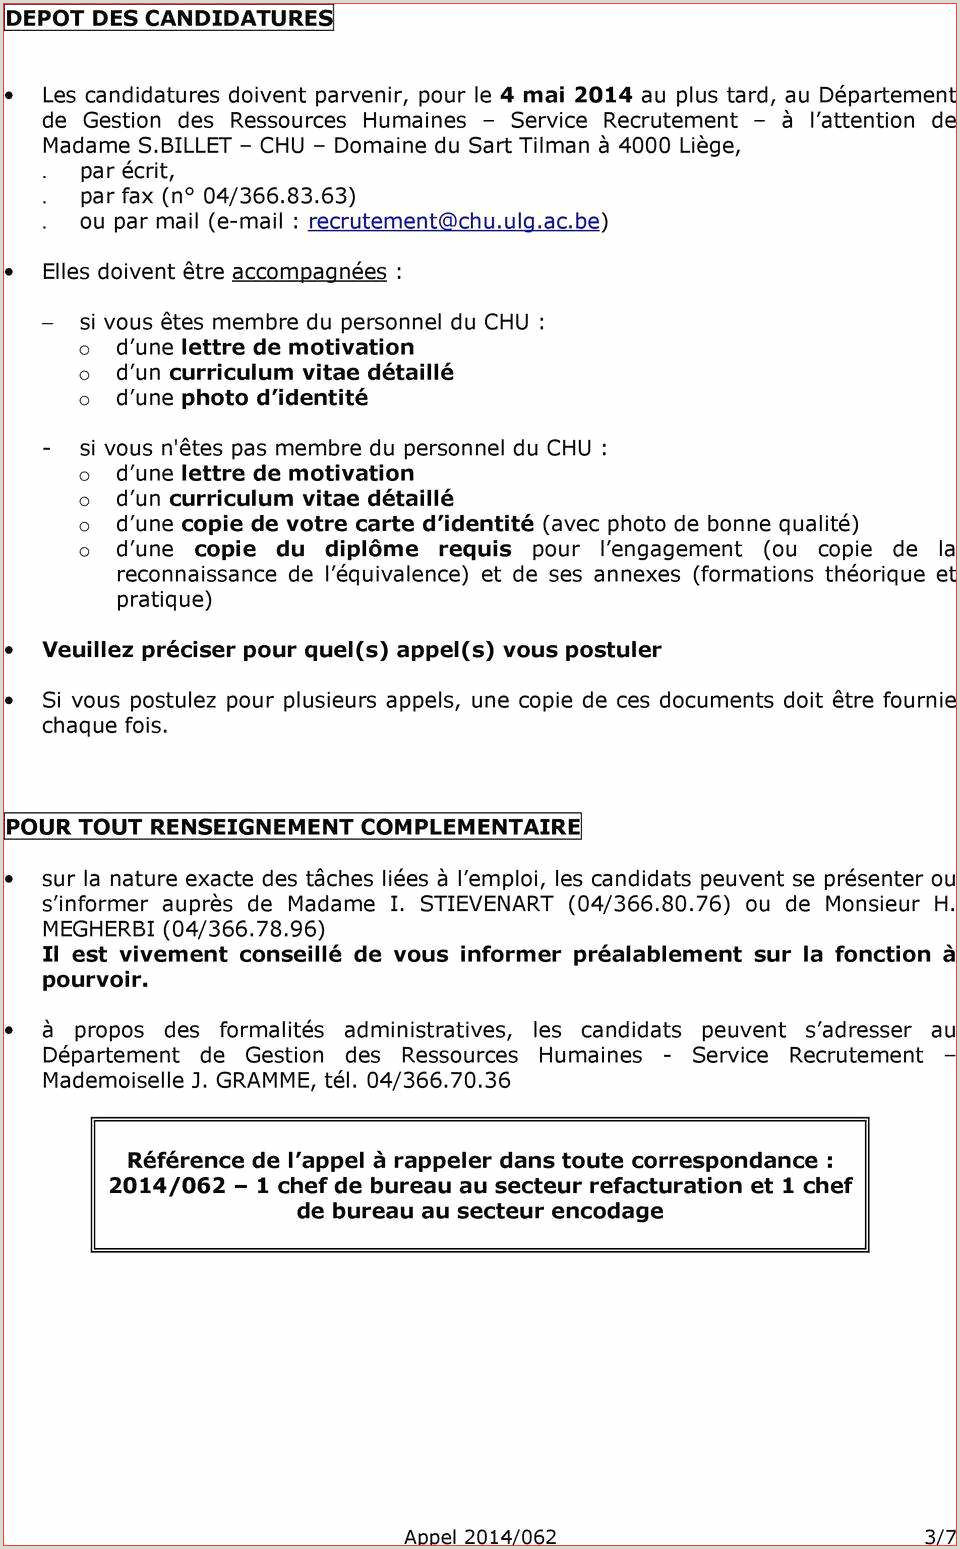 Exemple De Cv Responsable Logistique Exemple Lettre De Motivation Pour Embauche Lettre Motivation